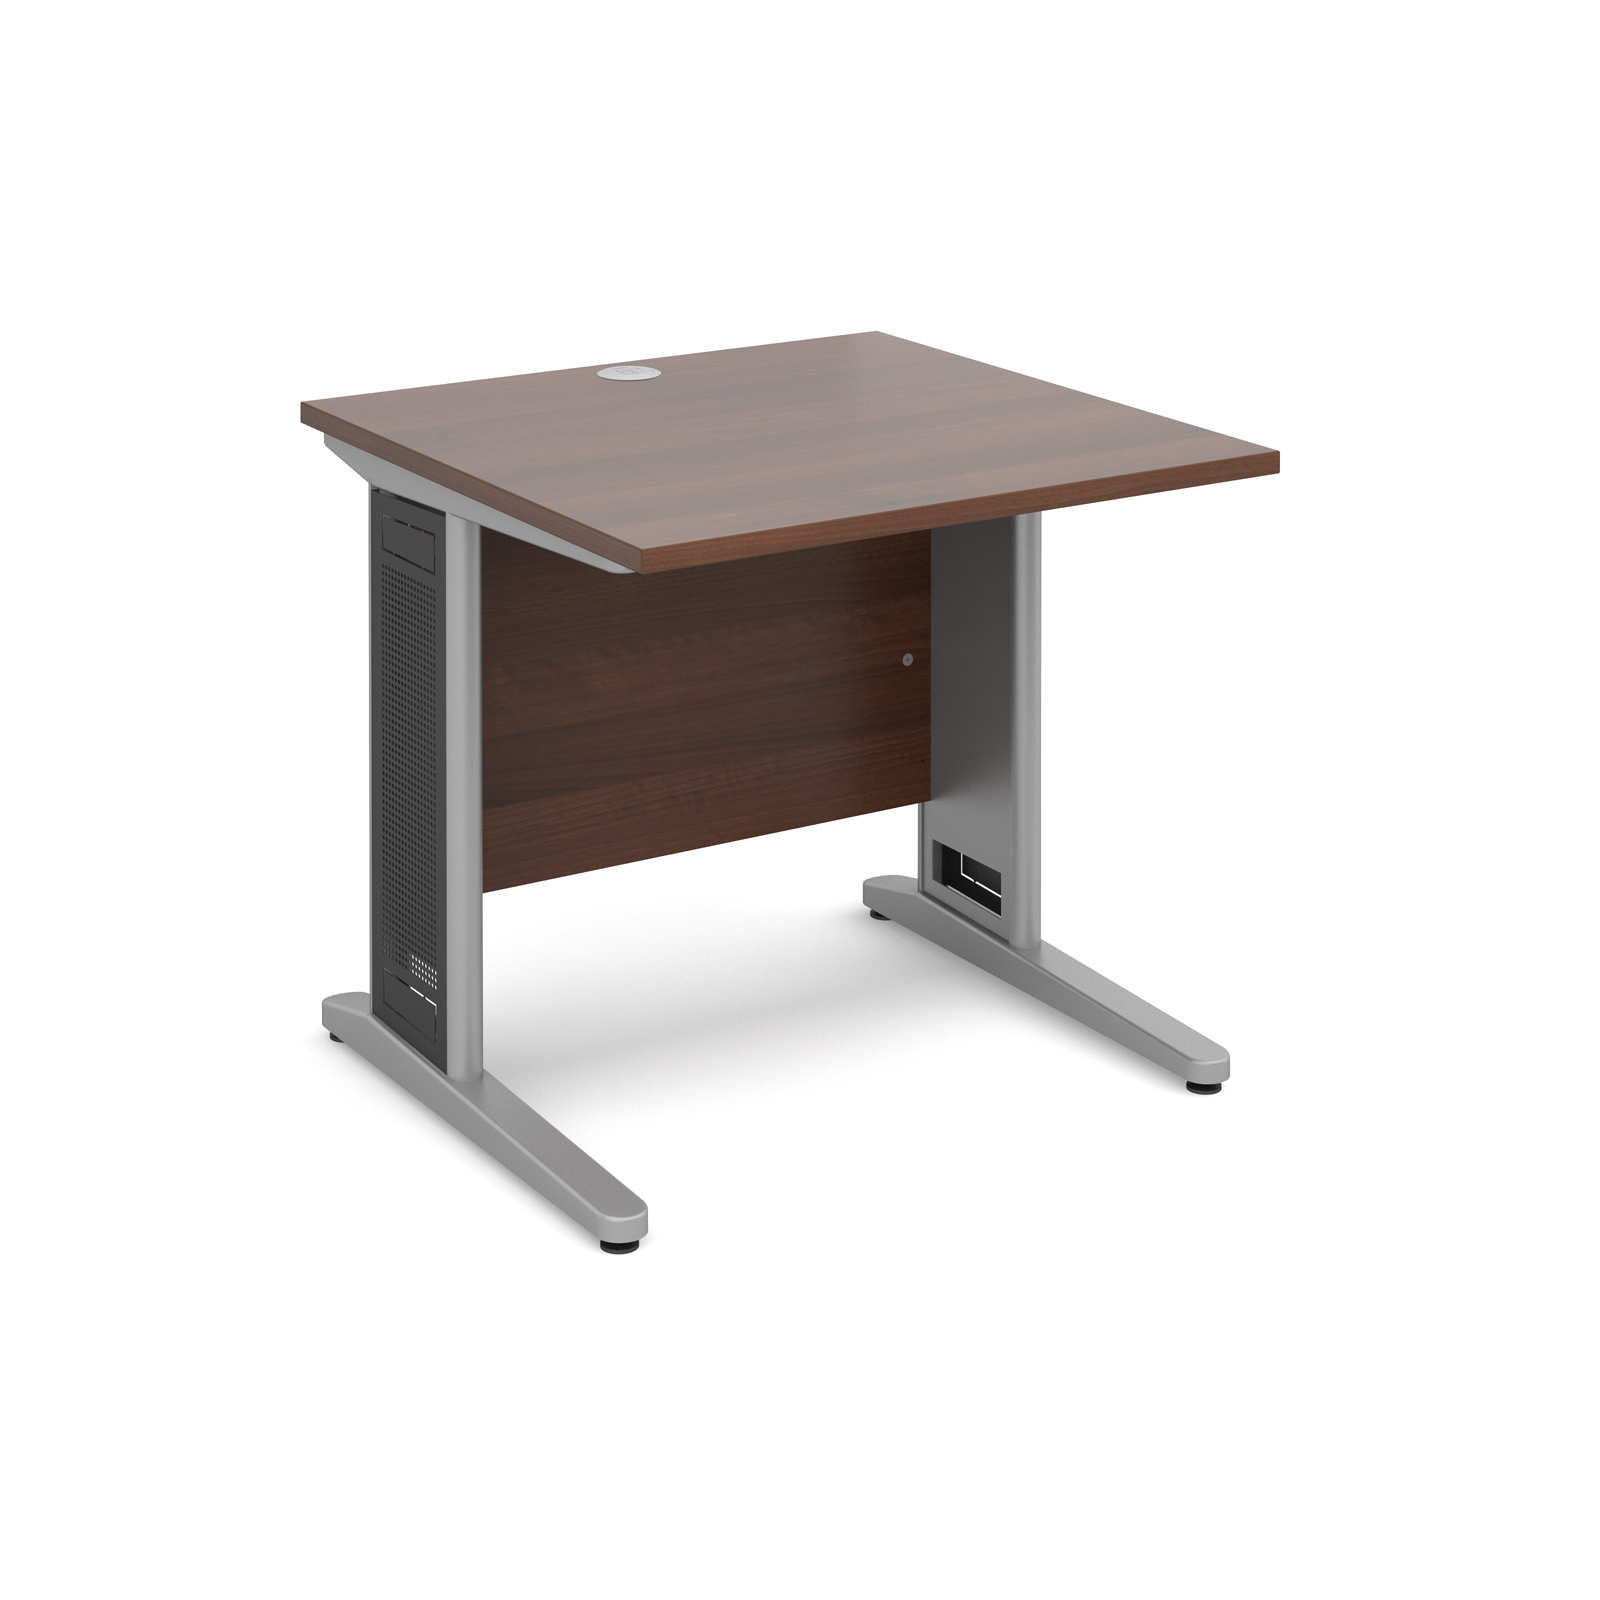 Largo straight desk 800mm x 800mm - silver cantilever frame with removable grill, walnut top